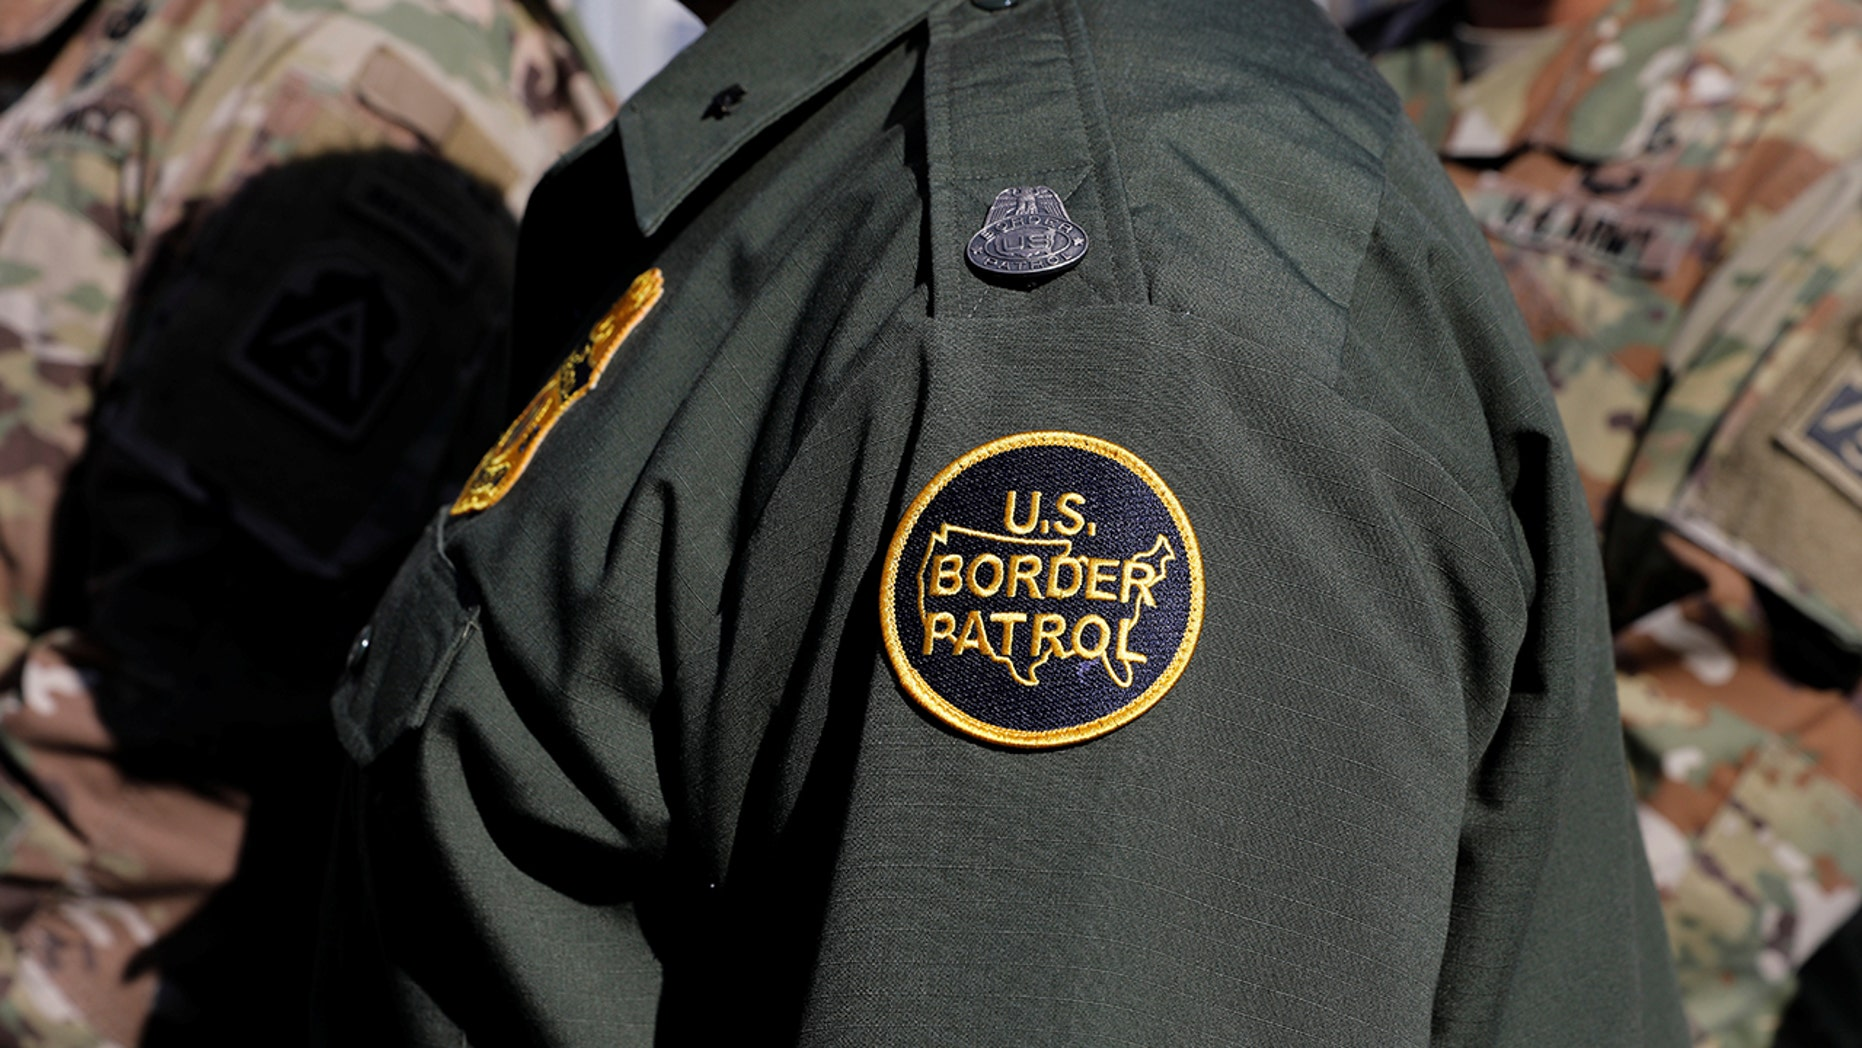 Two people died after being ejected from a van being used in a suspected smuggling operation involved in a chase with U.S Border Patrol agents in New Mexico, according to officials.